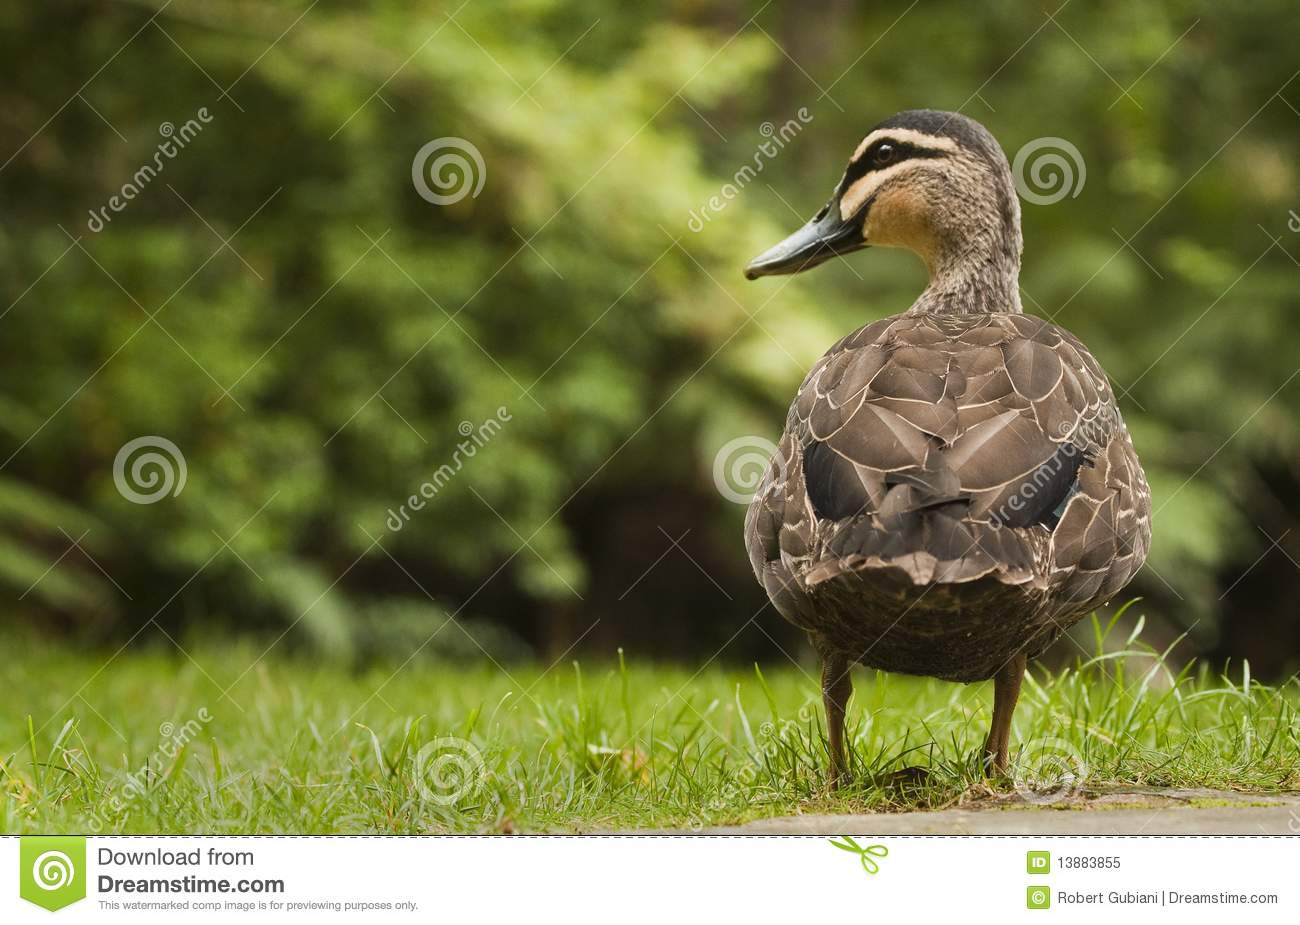 Pacific Black Duck on grass